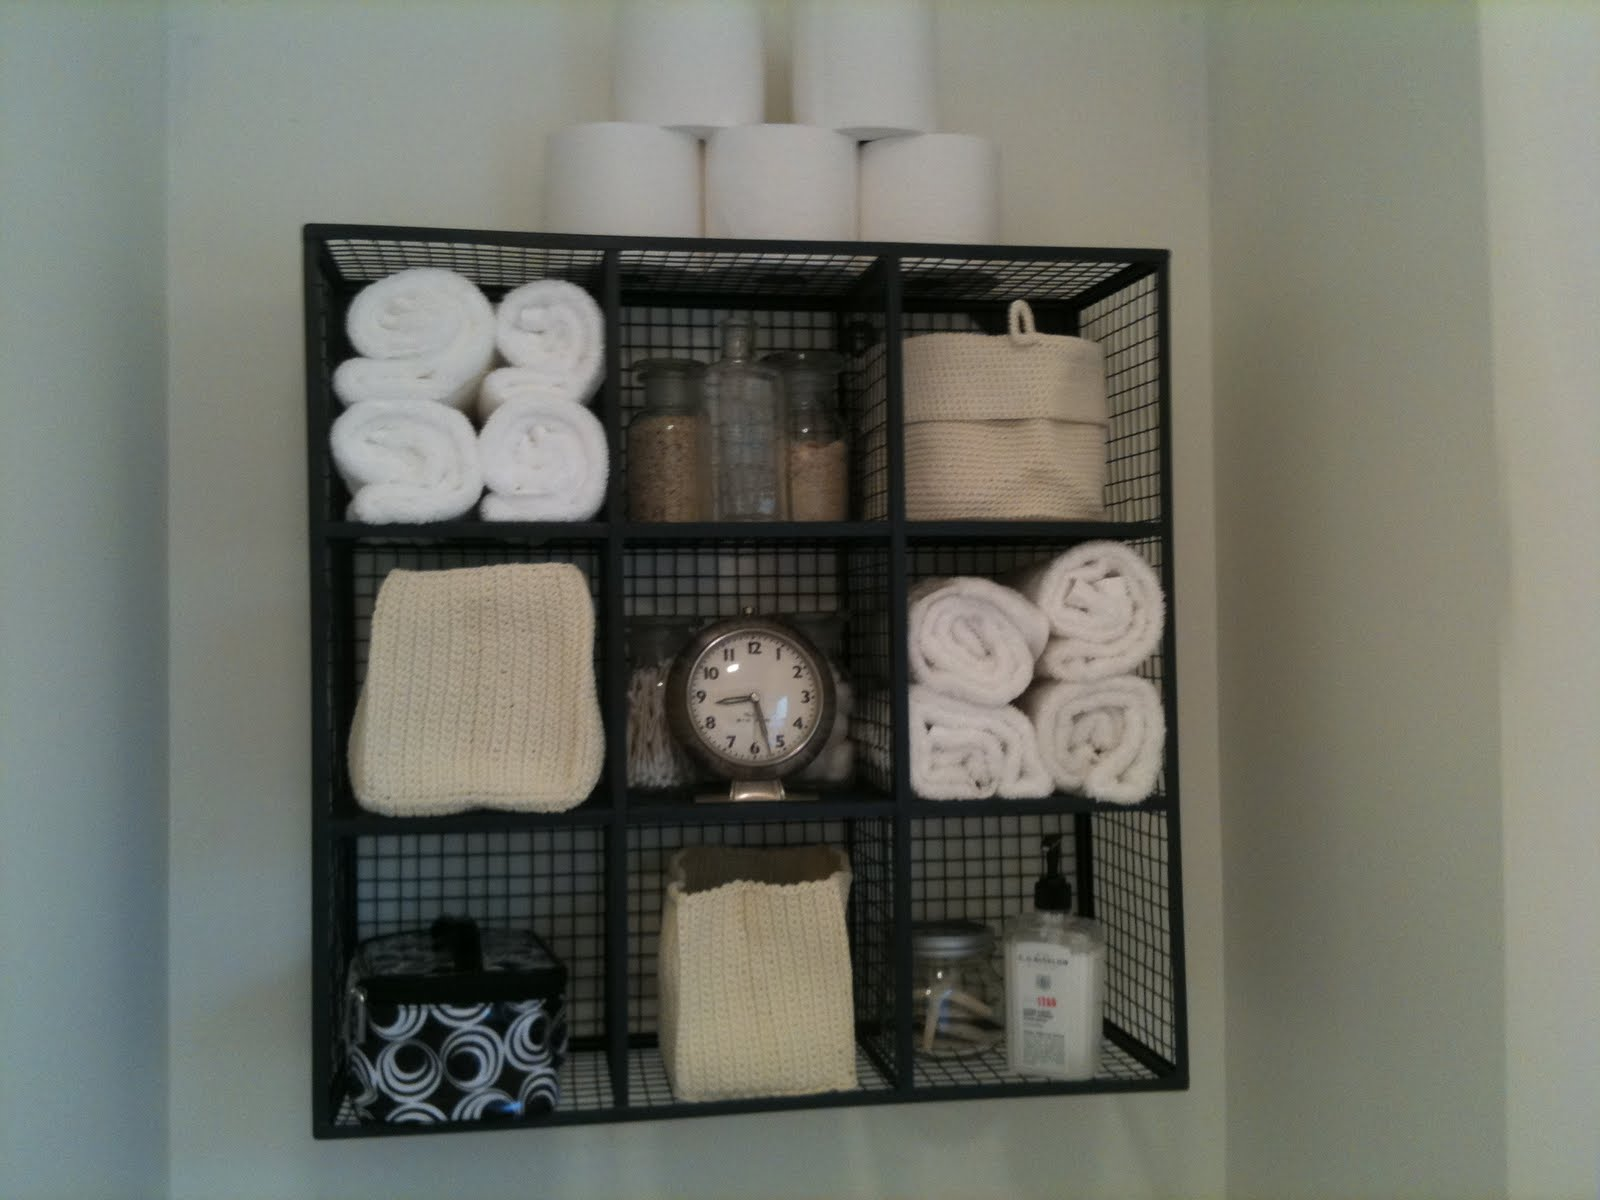 Cheerful Above Toilet Storage Ideas Over Toilet Storage Ideas Bathroom Wall Shelf Ikea Bathroom Wall Shelf Nz bathroom Bathroom Shelf Wall